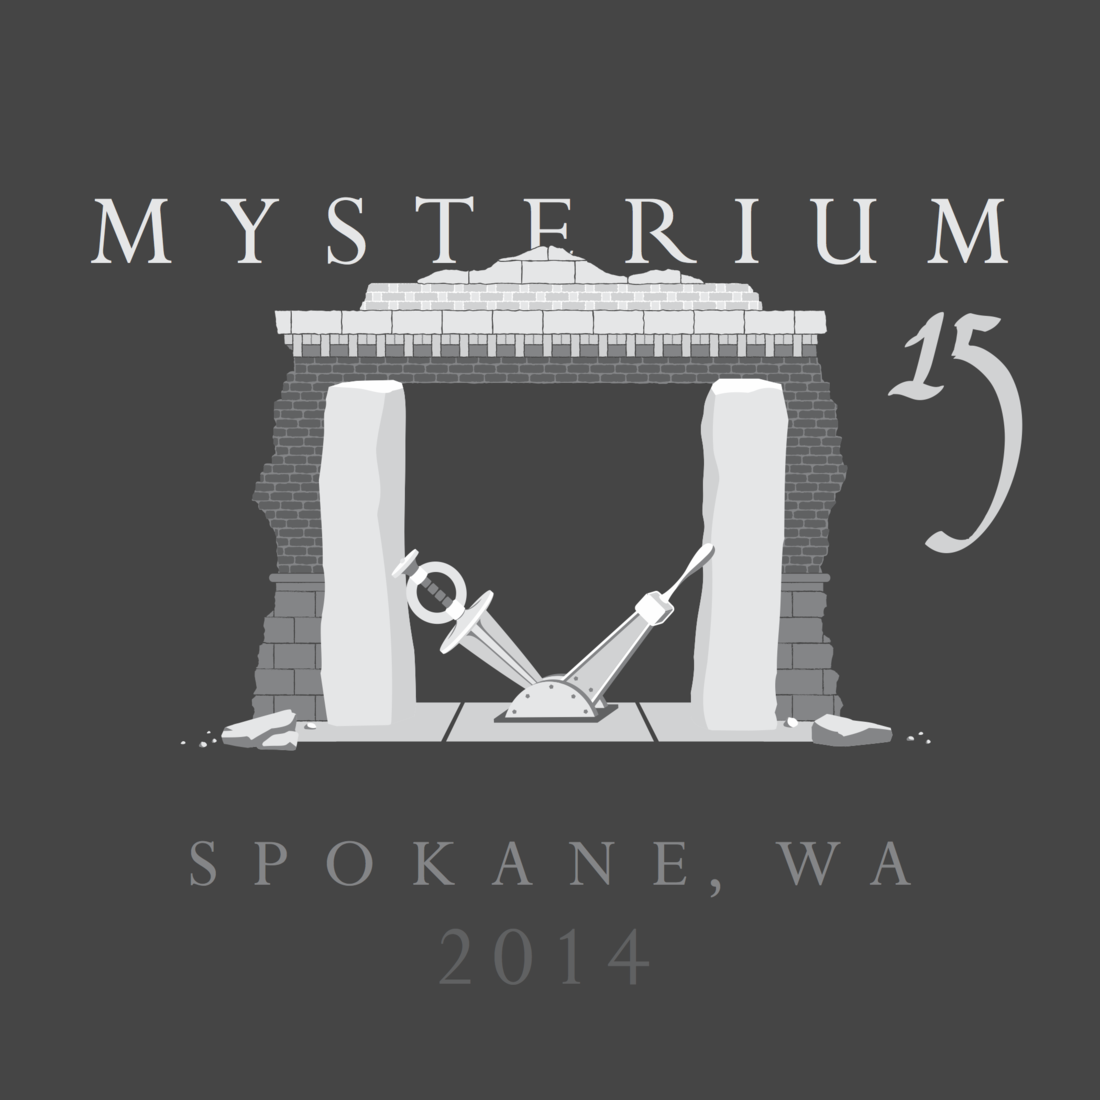 Registration now open for annual Myst convention, Mysterium